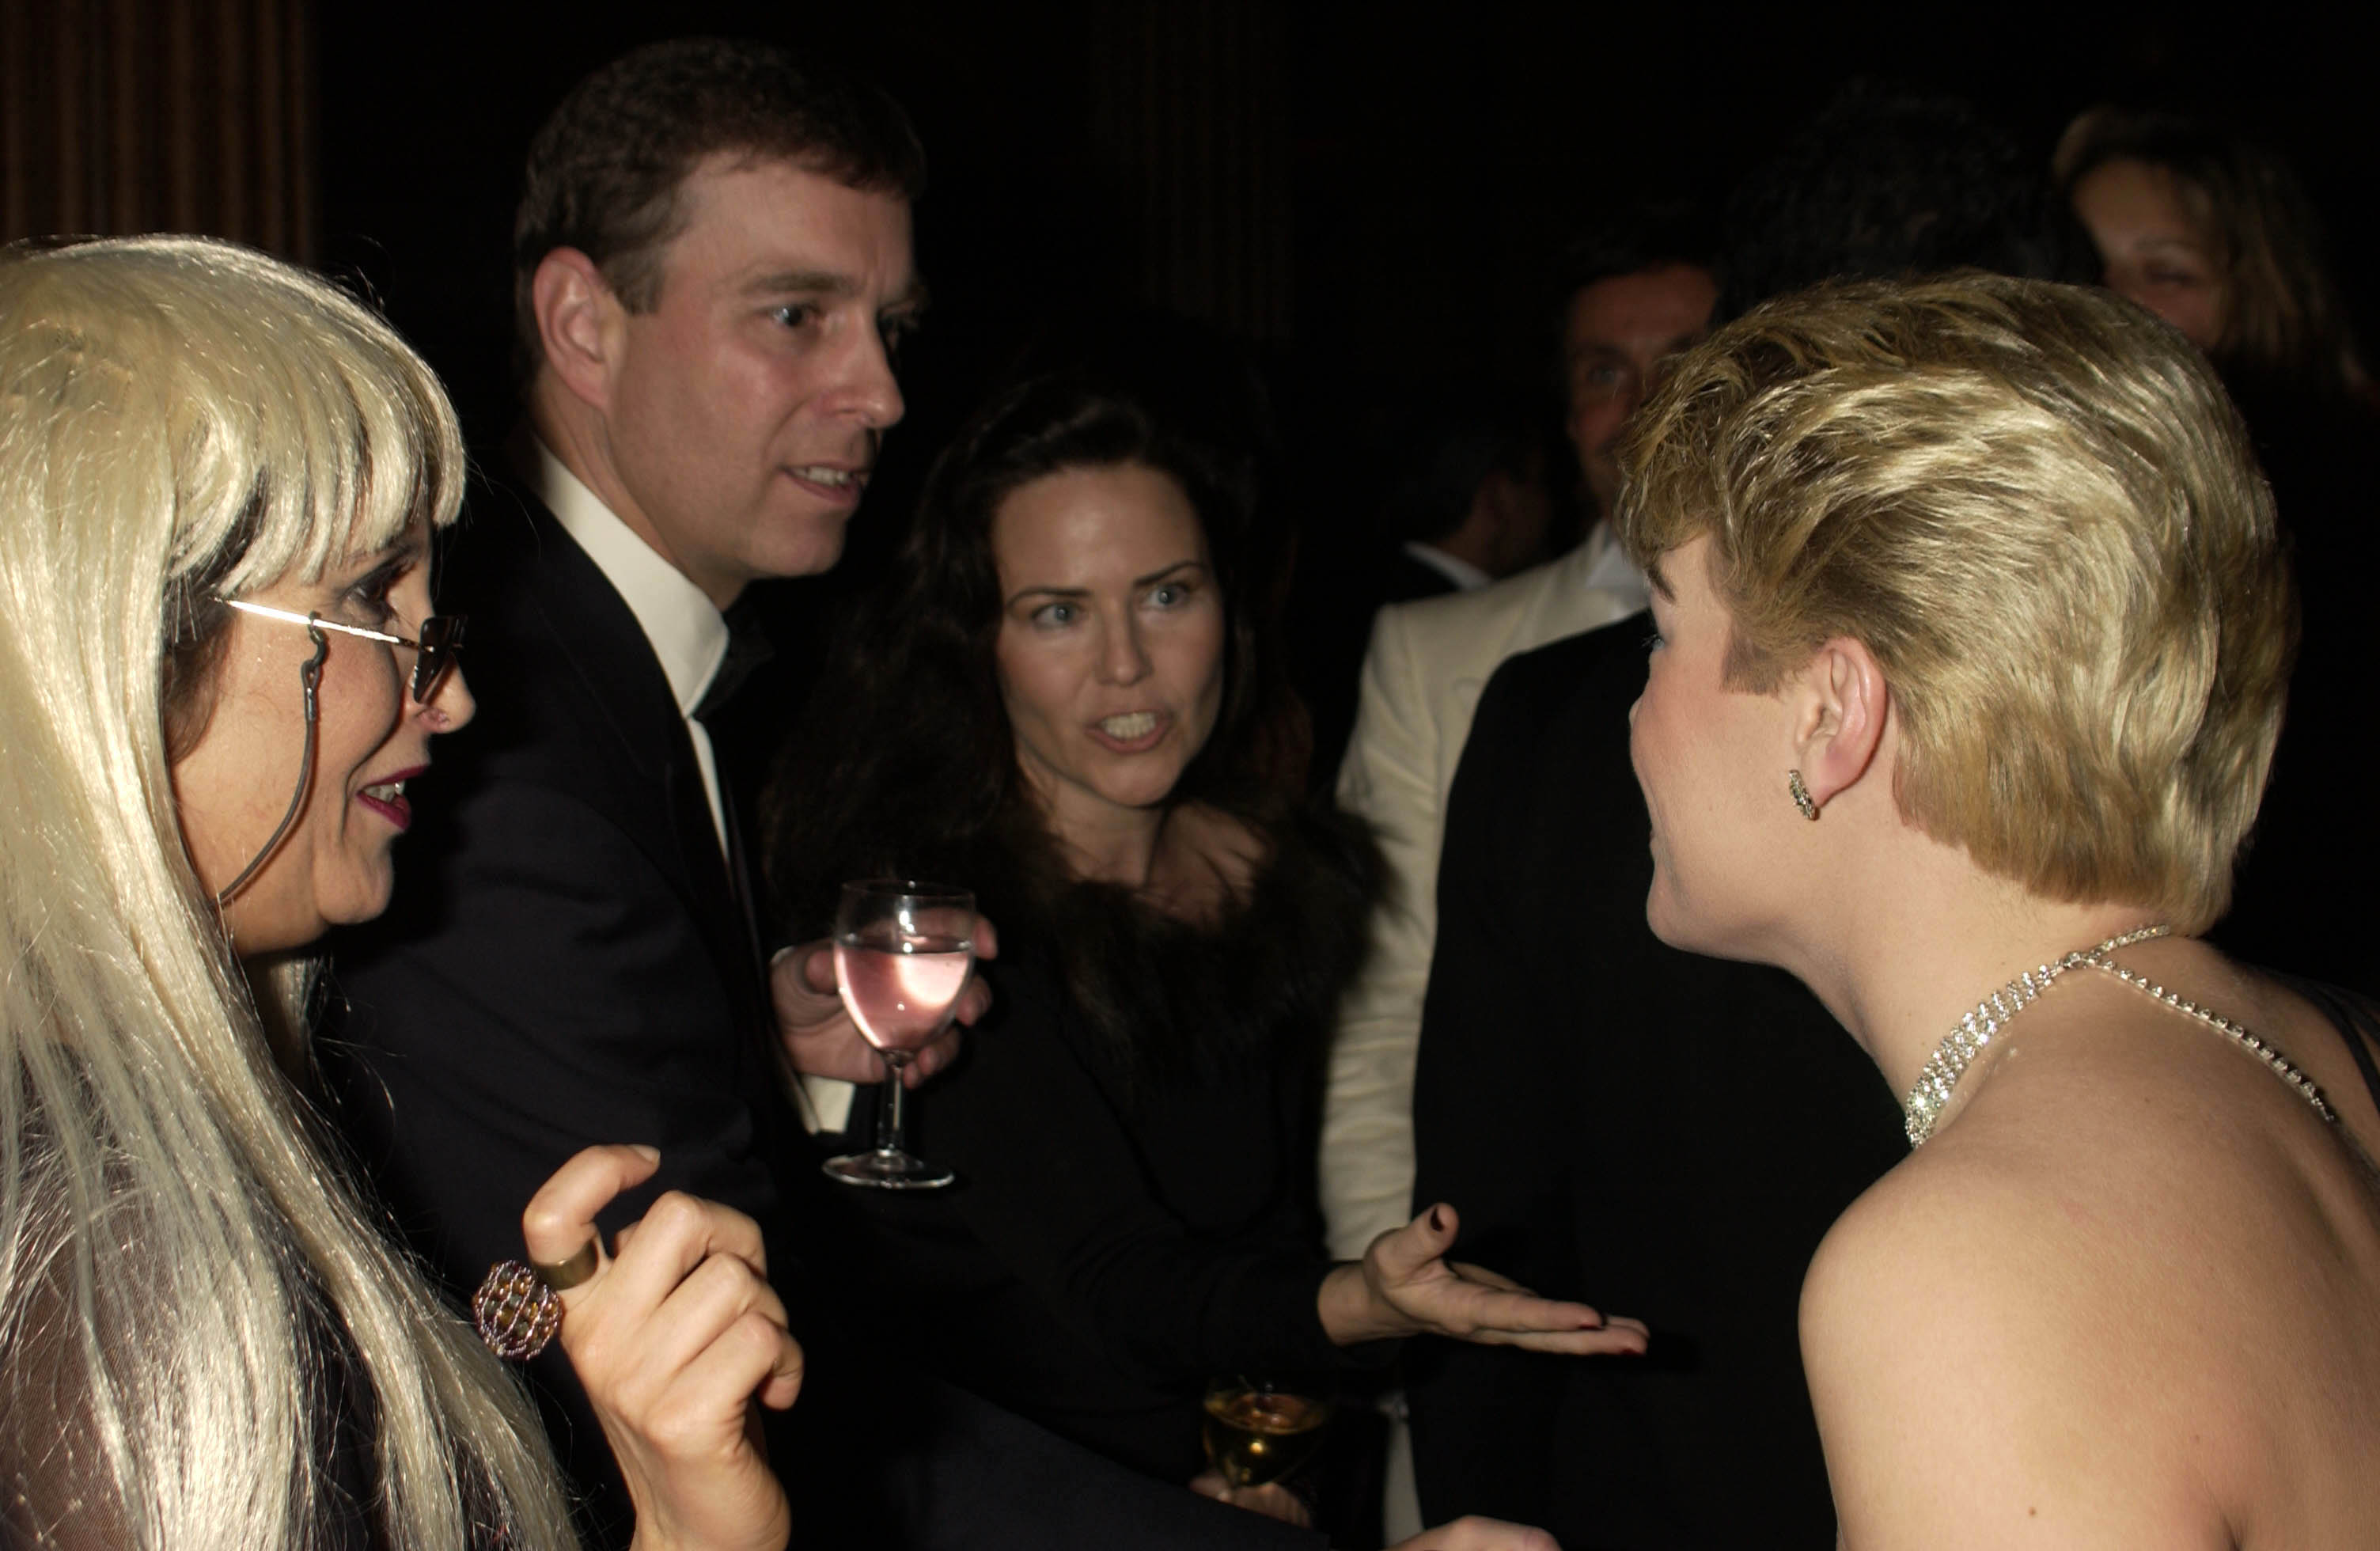 Prince Andrew and Koo Stark, pictured together at a society party. (Photo by Dave Benett/Getty Images)